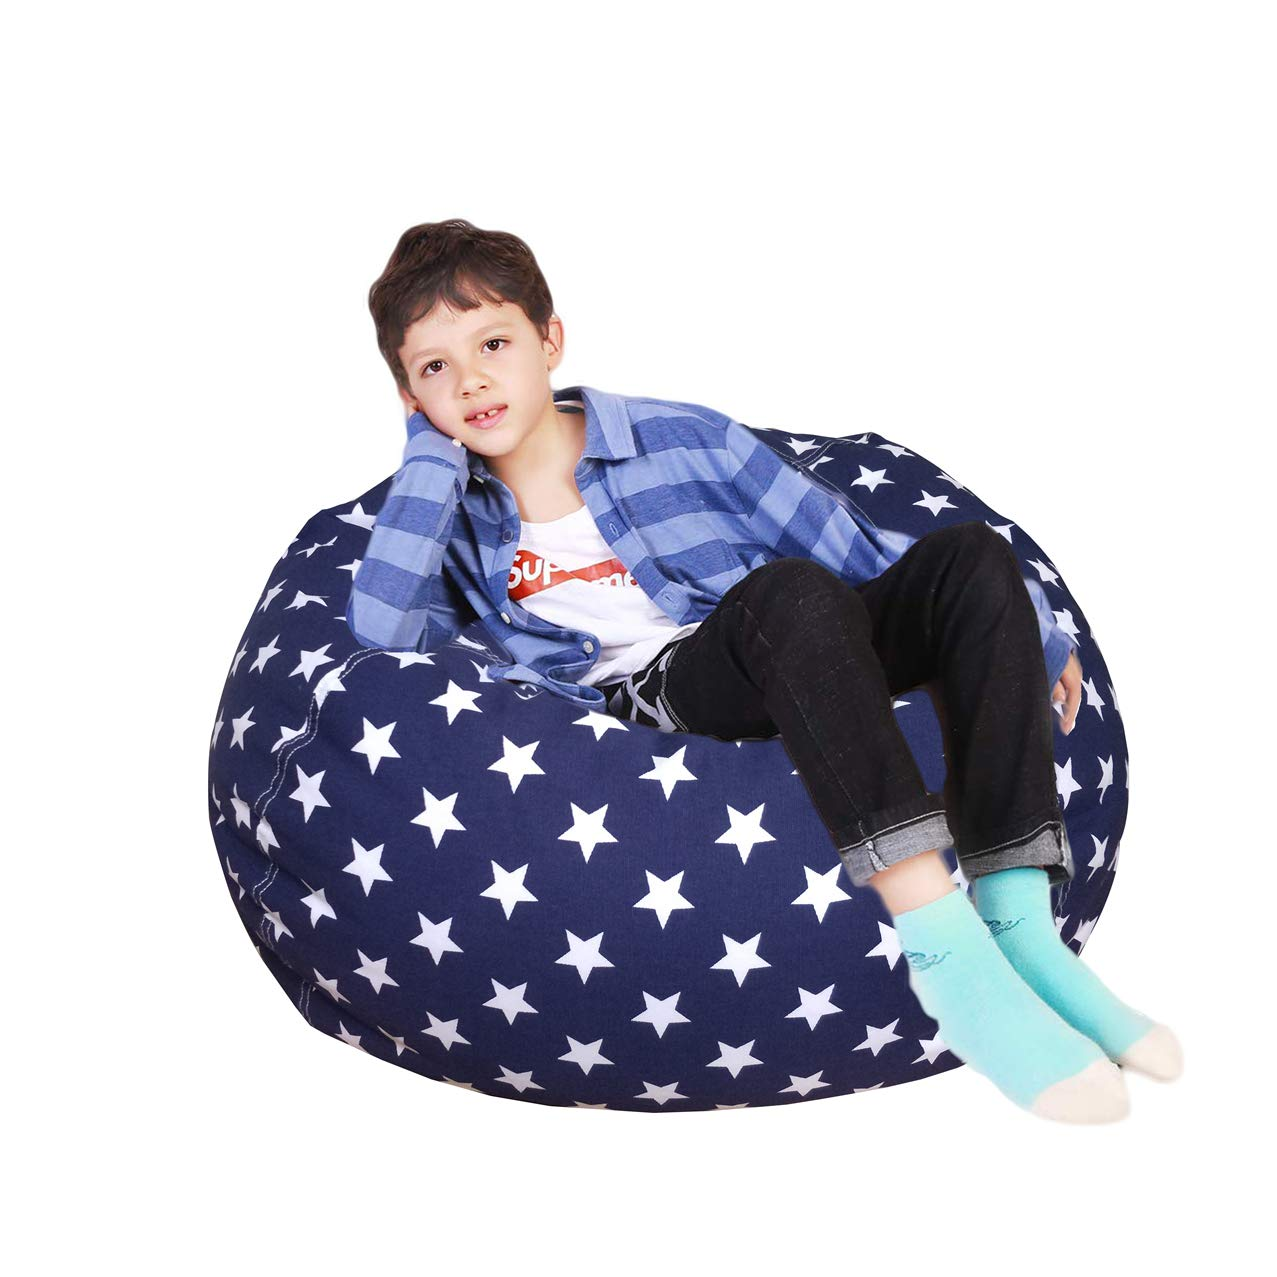 Lukeight Stuffed Animal Storage Bean Bag Chair, Bean Bag Cover for Organizing Kid s Room – Fits a Lot of Stuffed Animals, X-Large Stars Navy